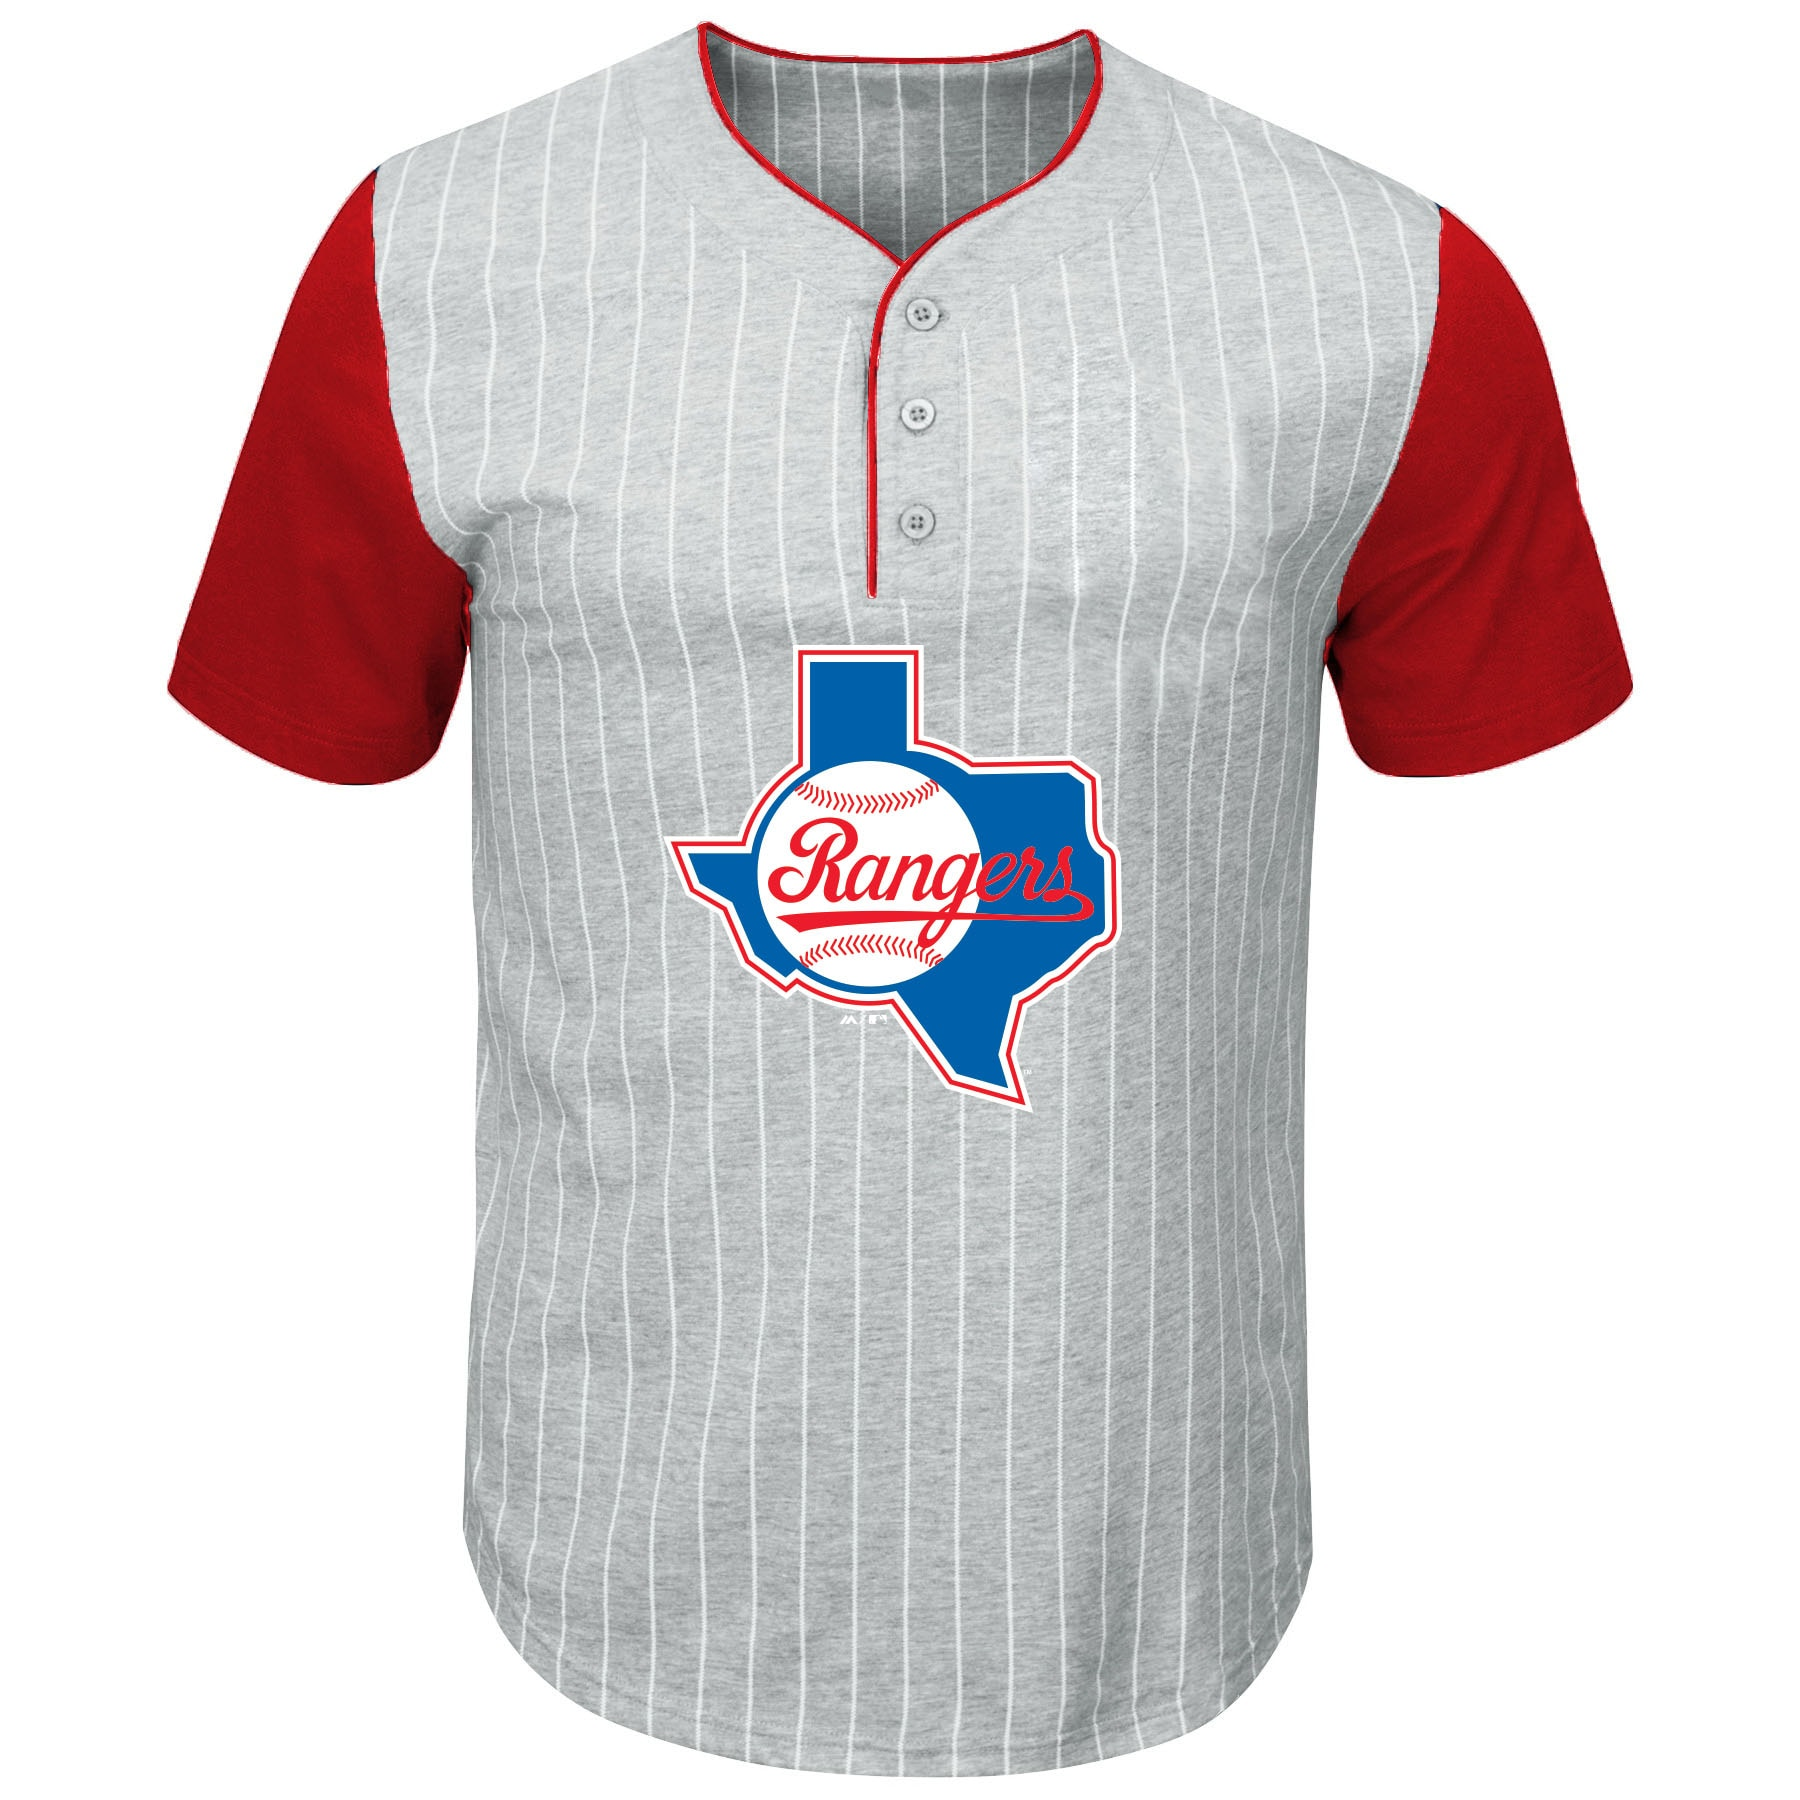 Texas Rangers Majestic Big & Tall Cooperstown Collection Pinstripe Henley Raglan T-Shirt - Gray/Red